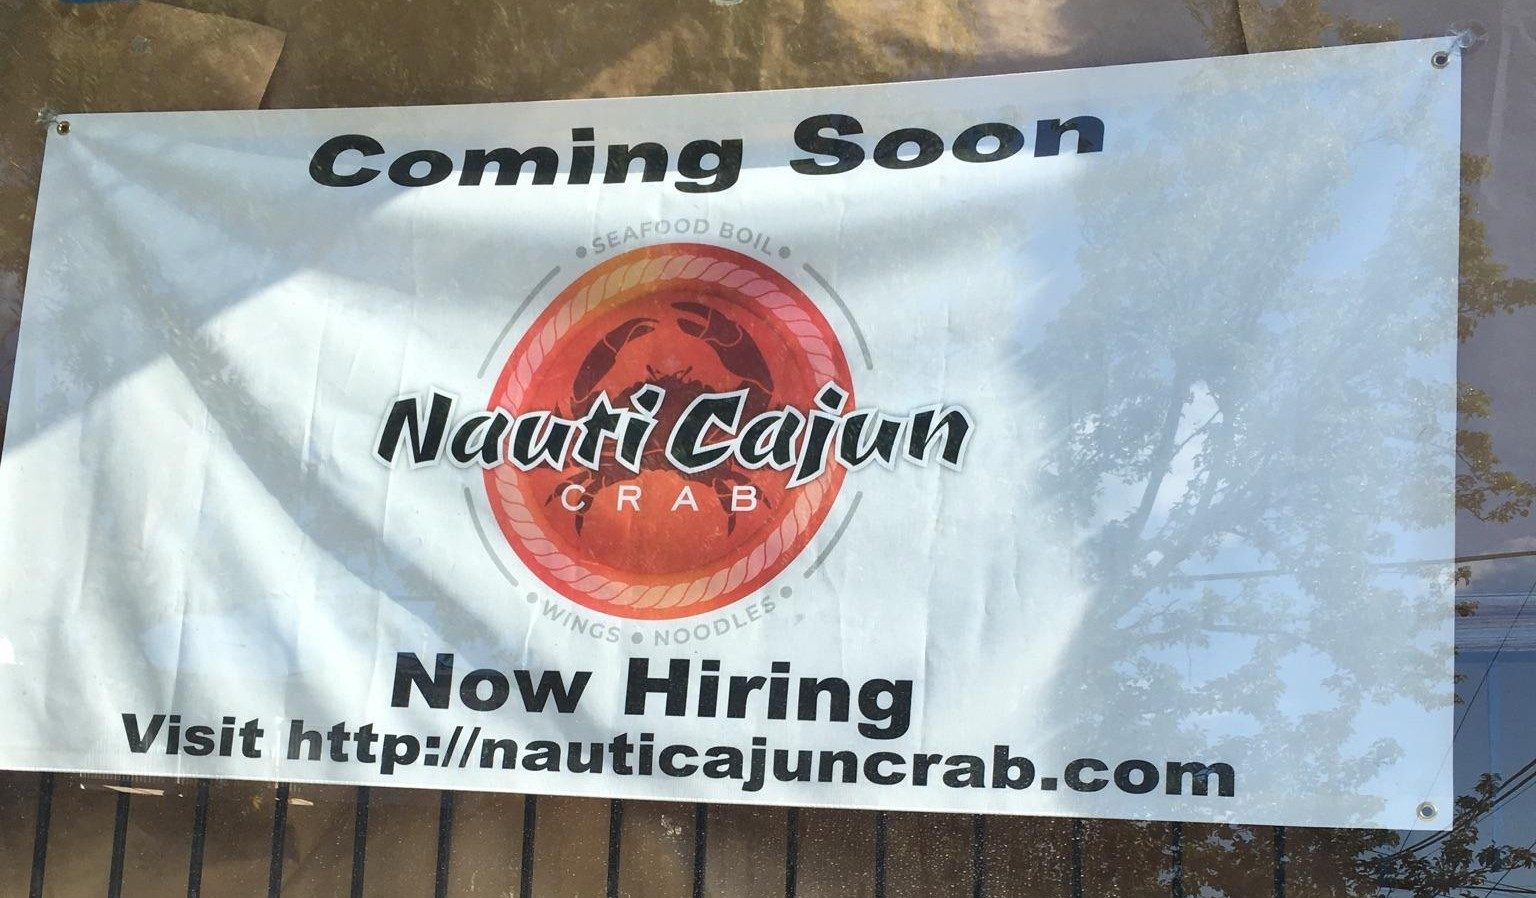 Louisiana-style seafood boil coming to Metuchen